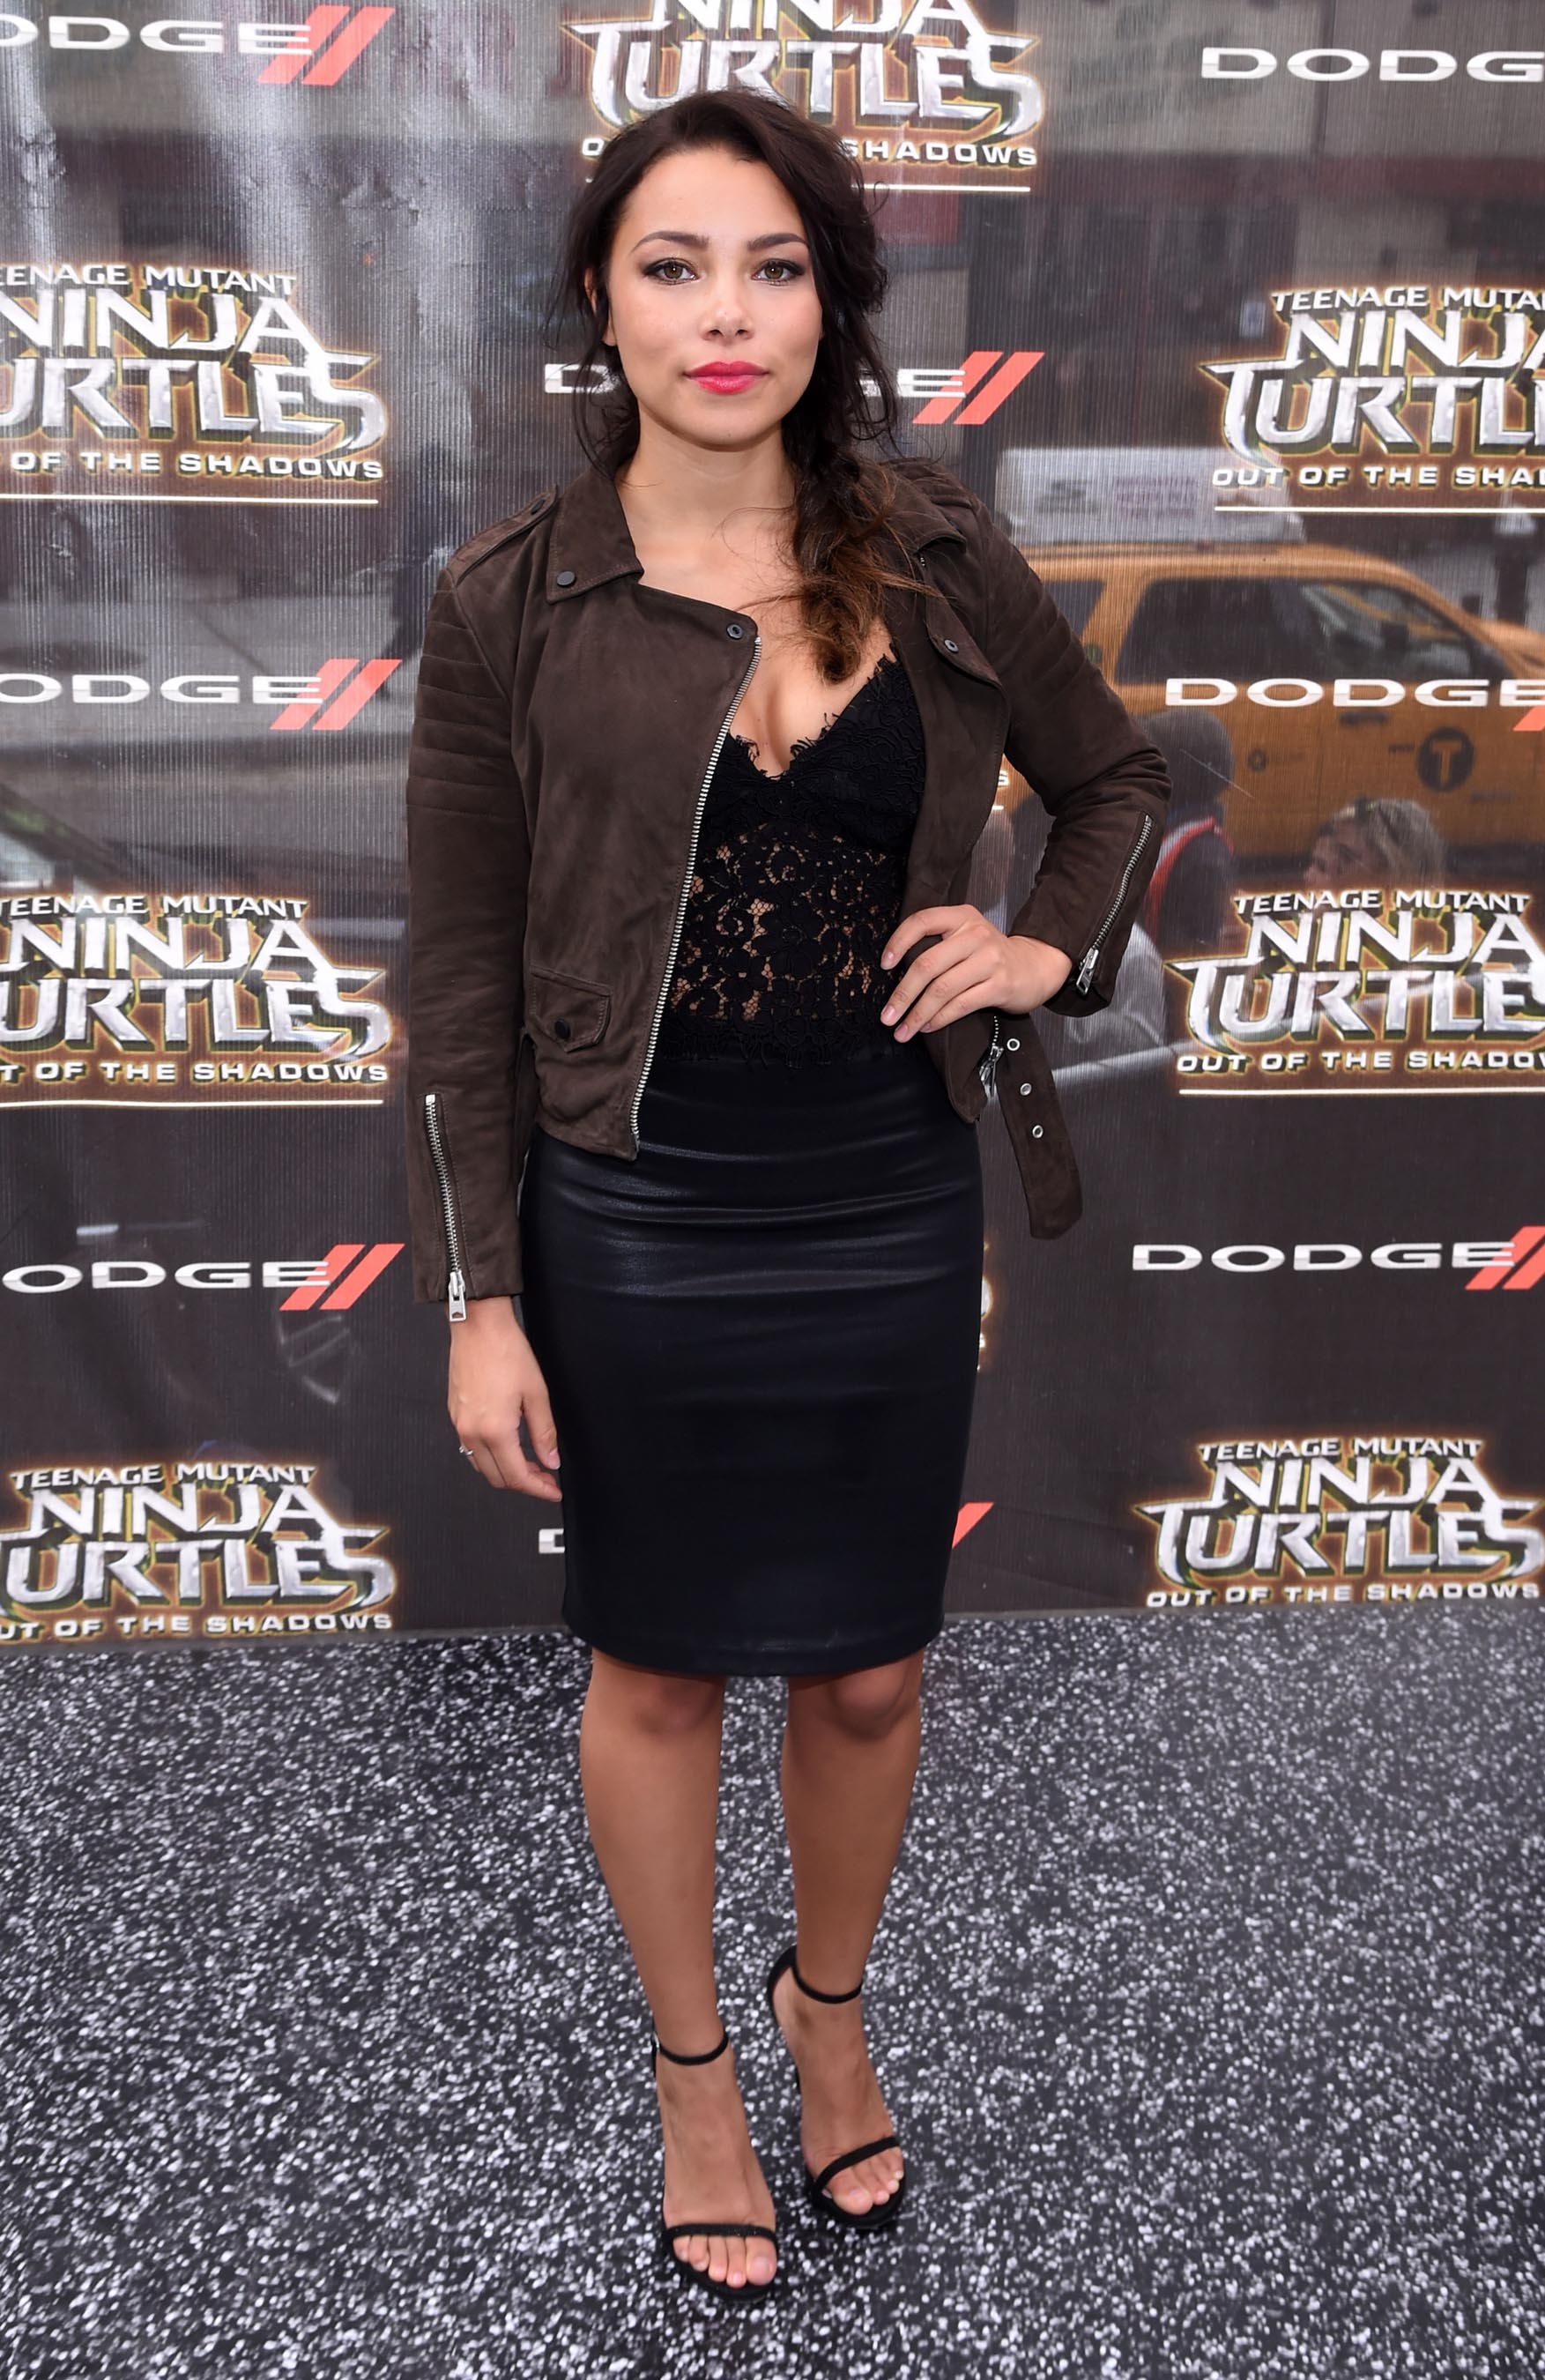 Jessica Parker Kennedy attends Teenage Mutant Ninja Turtles Out of the Shadows premiere